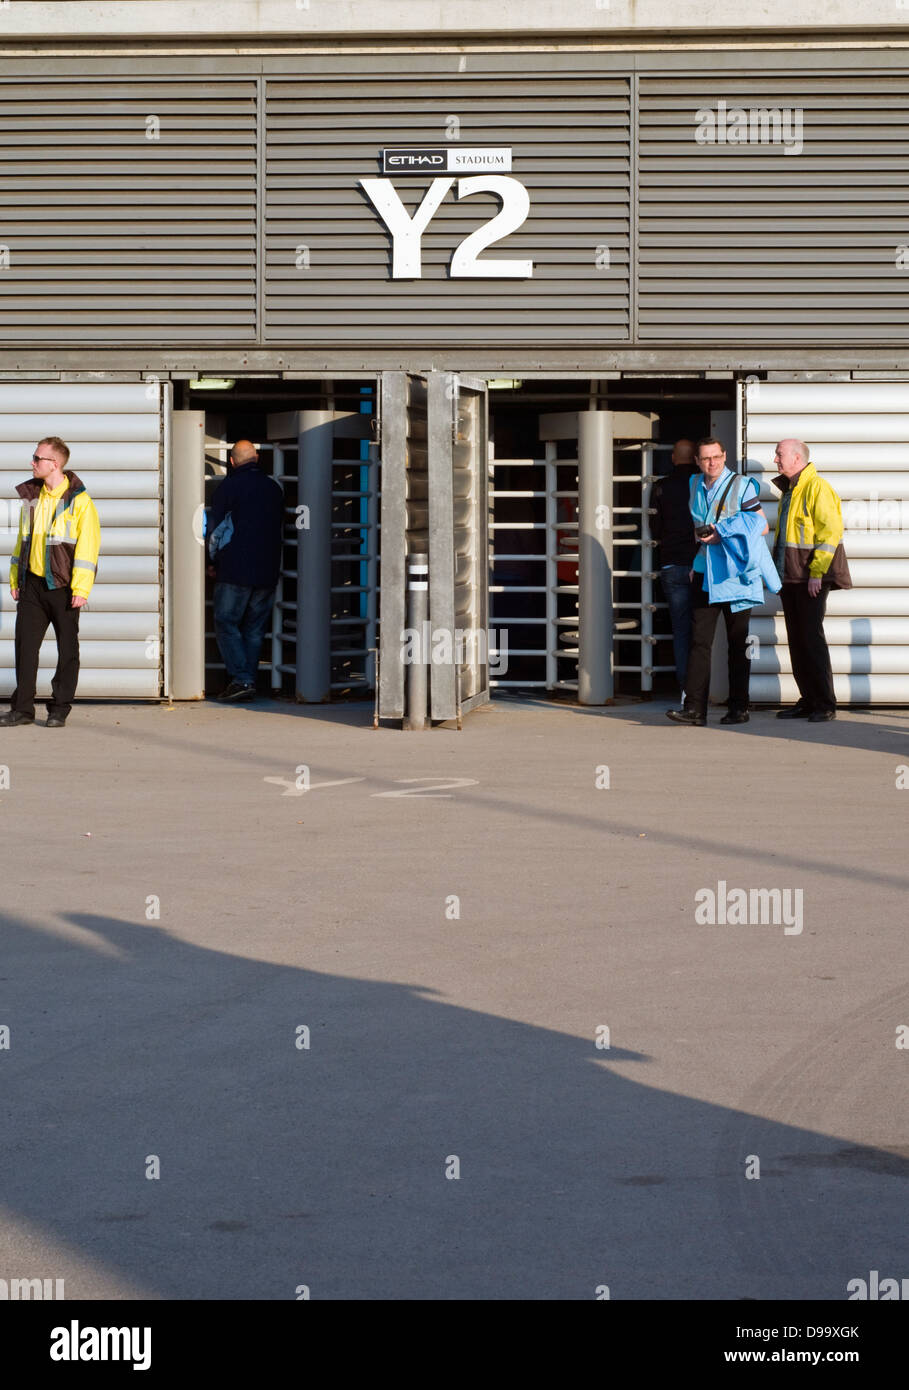 Turnstiles at the Etihad Stadium, home of Manchester City Football Club  in the English Premier League Stock Photo